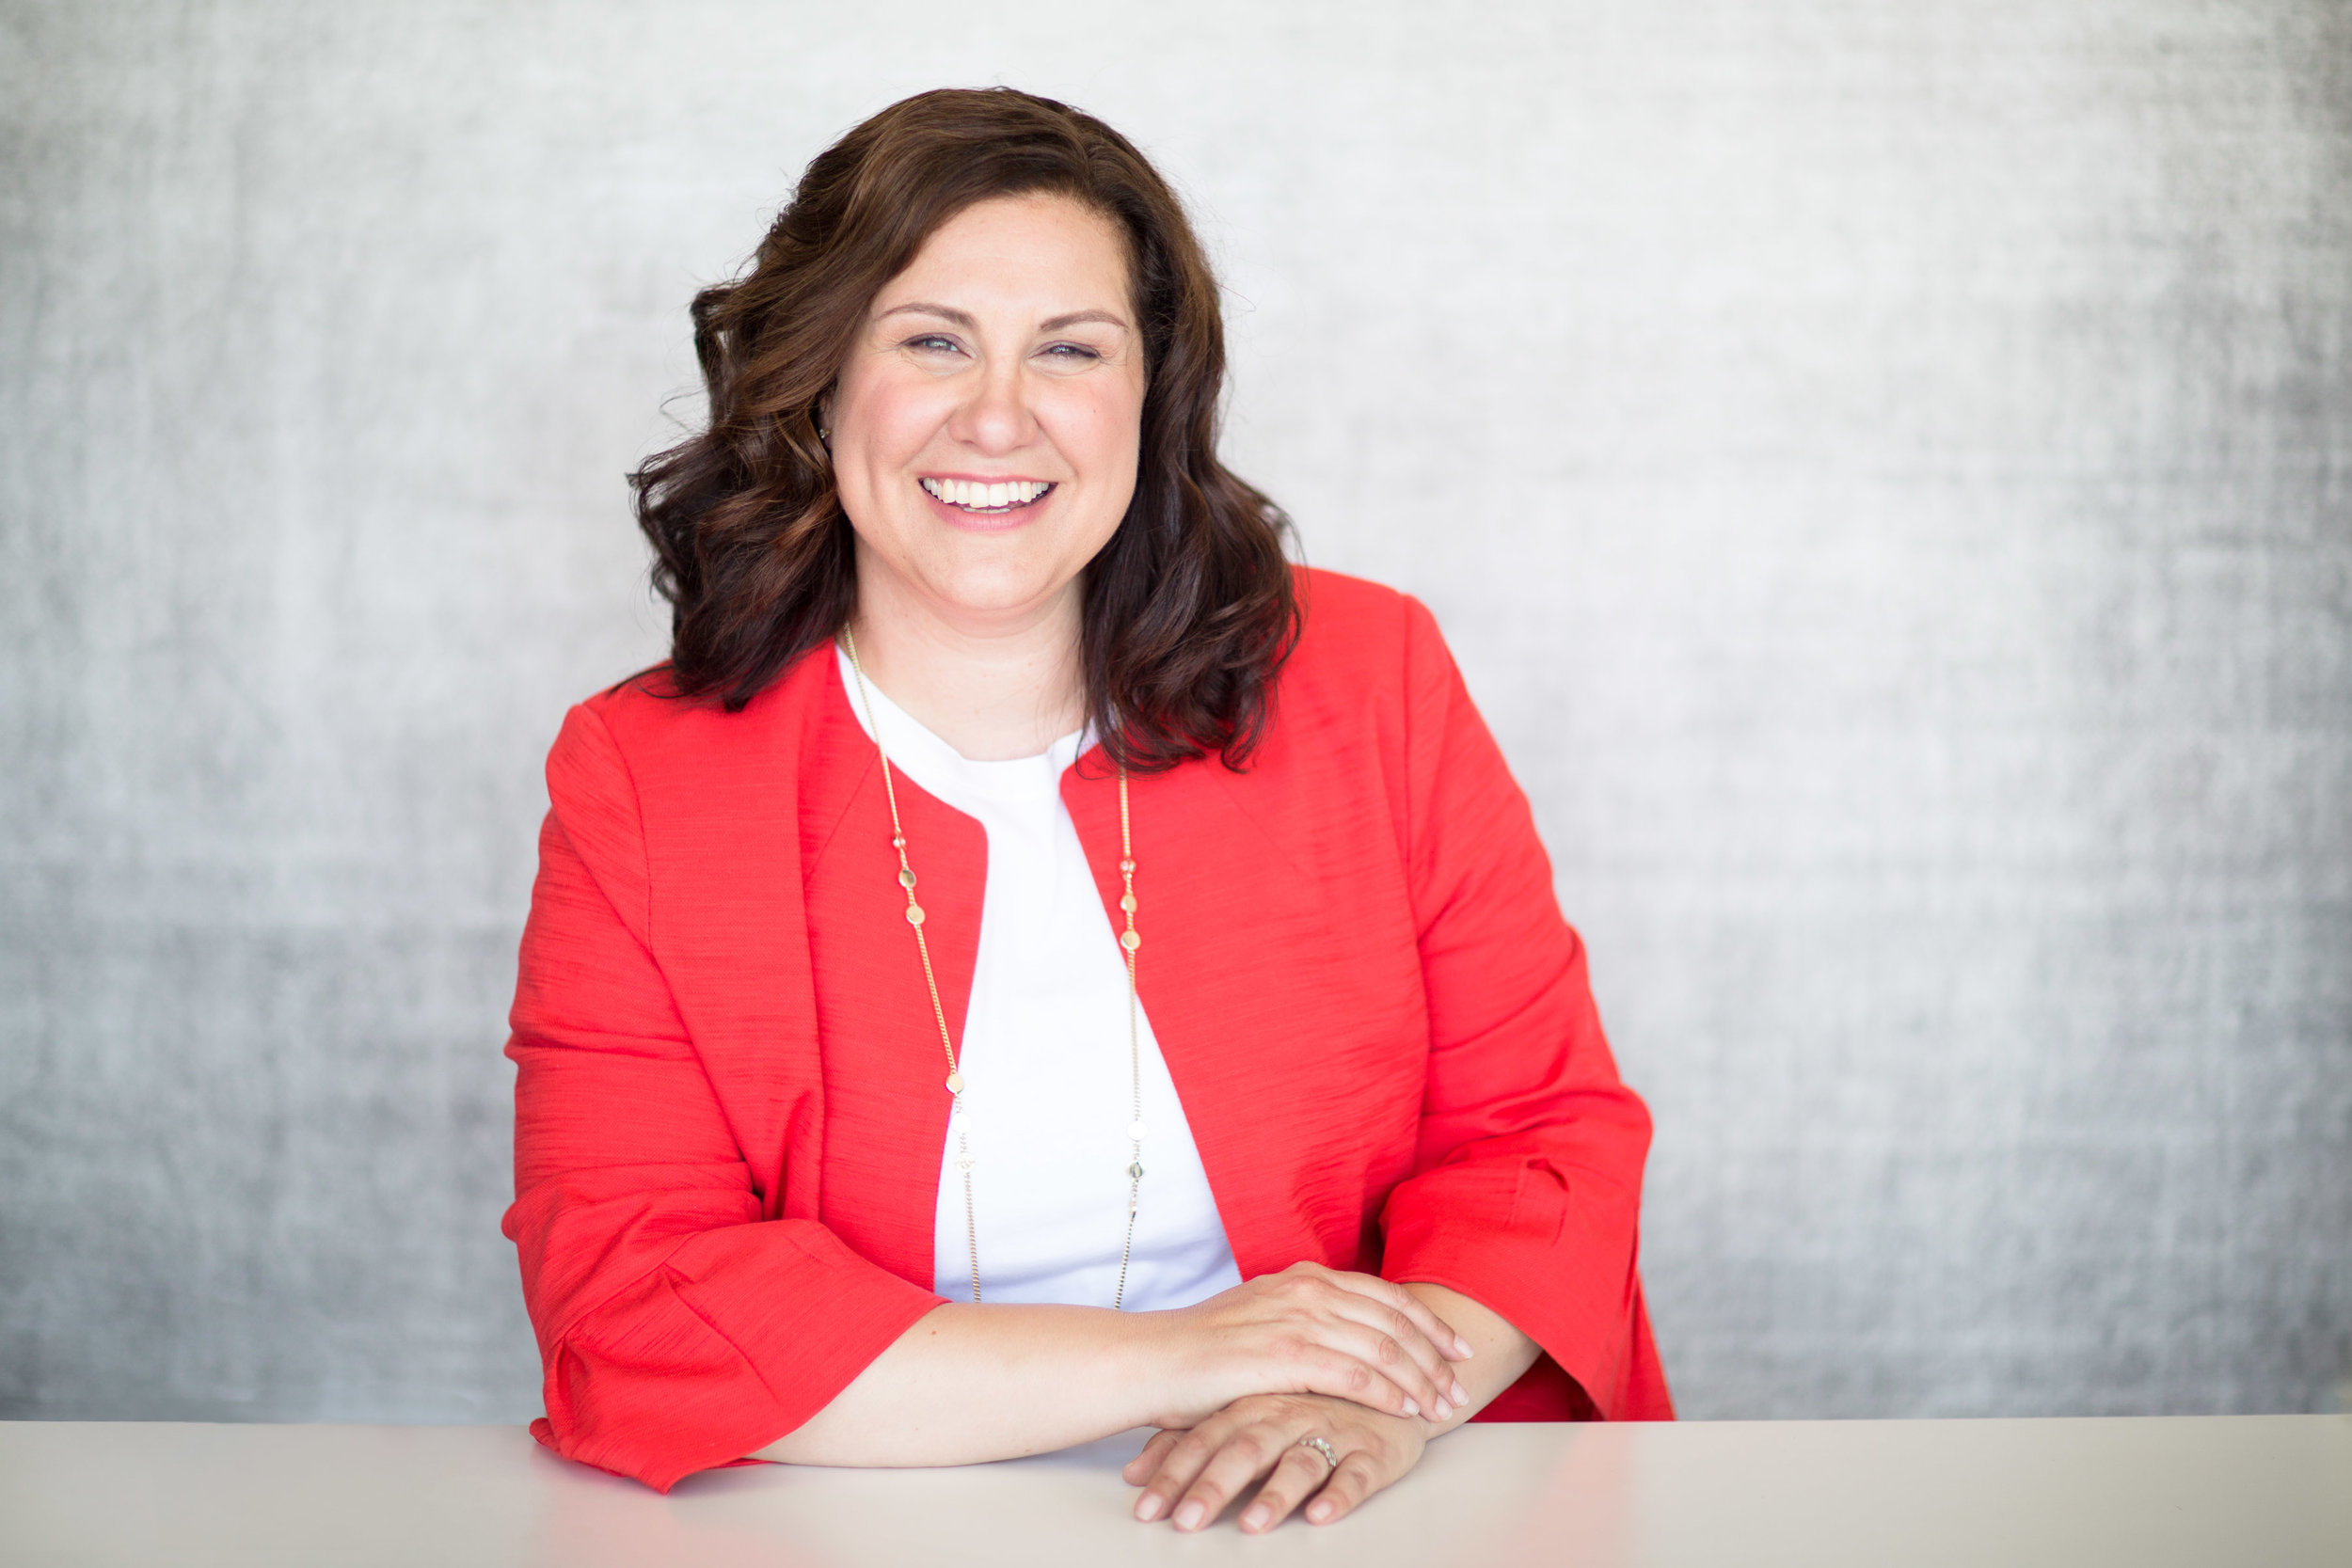 Hi, I'm Sharon Stolt - I'm a Transformational Career Strategist + Coach, which means I get to help unapologetically ambitious women like you take charge of their next career move and design a future that makes them excited to get up every morning.